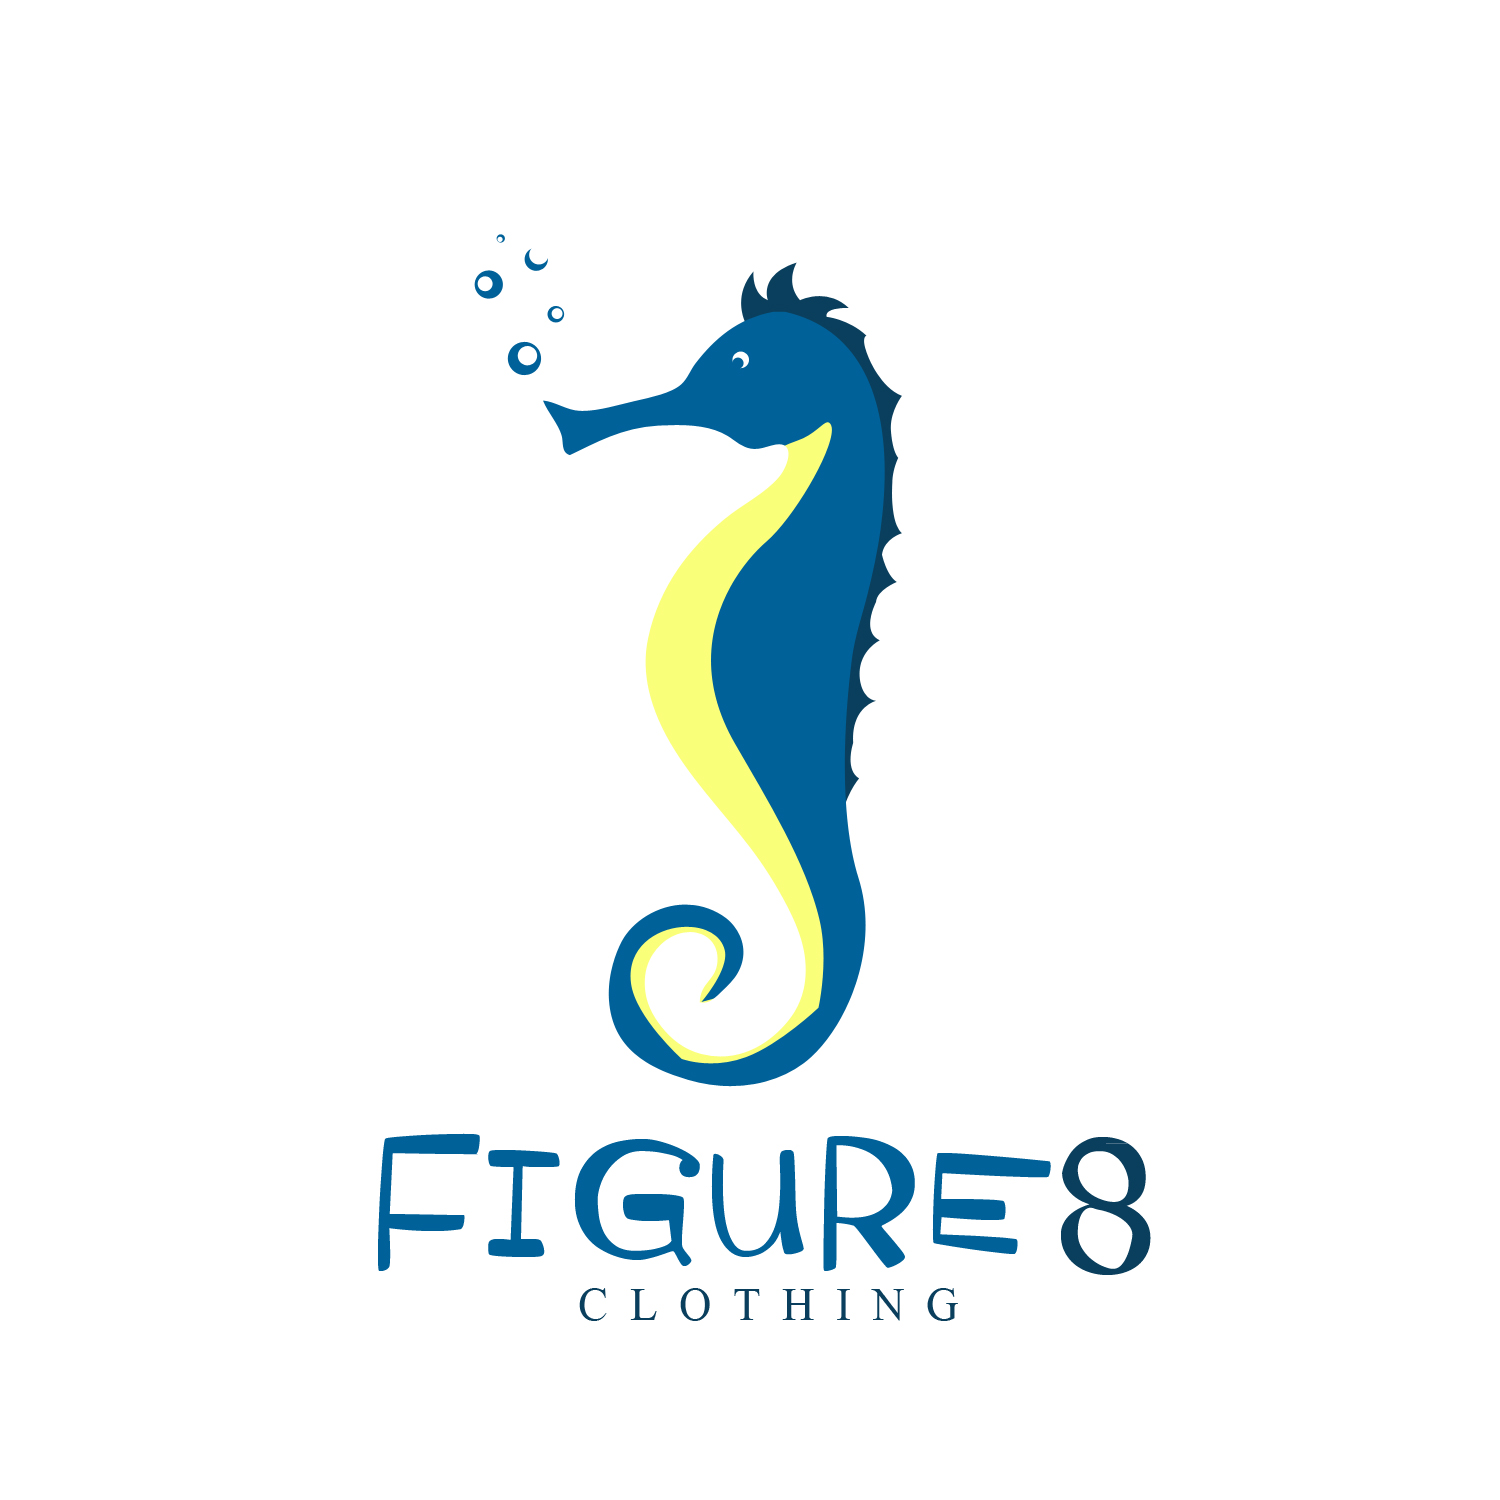 Logo Design by Kenneth Joel - Entry No. 6 in the Logo Design Contest Artistic Logo Design for Figure Eight Clothing.